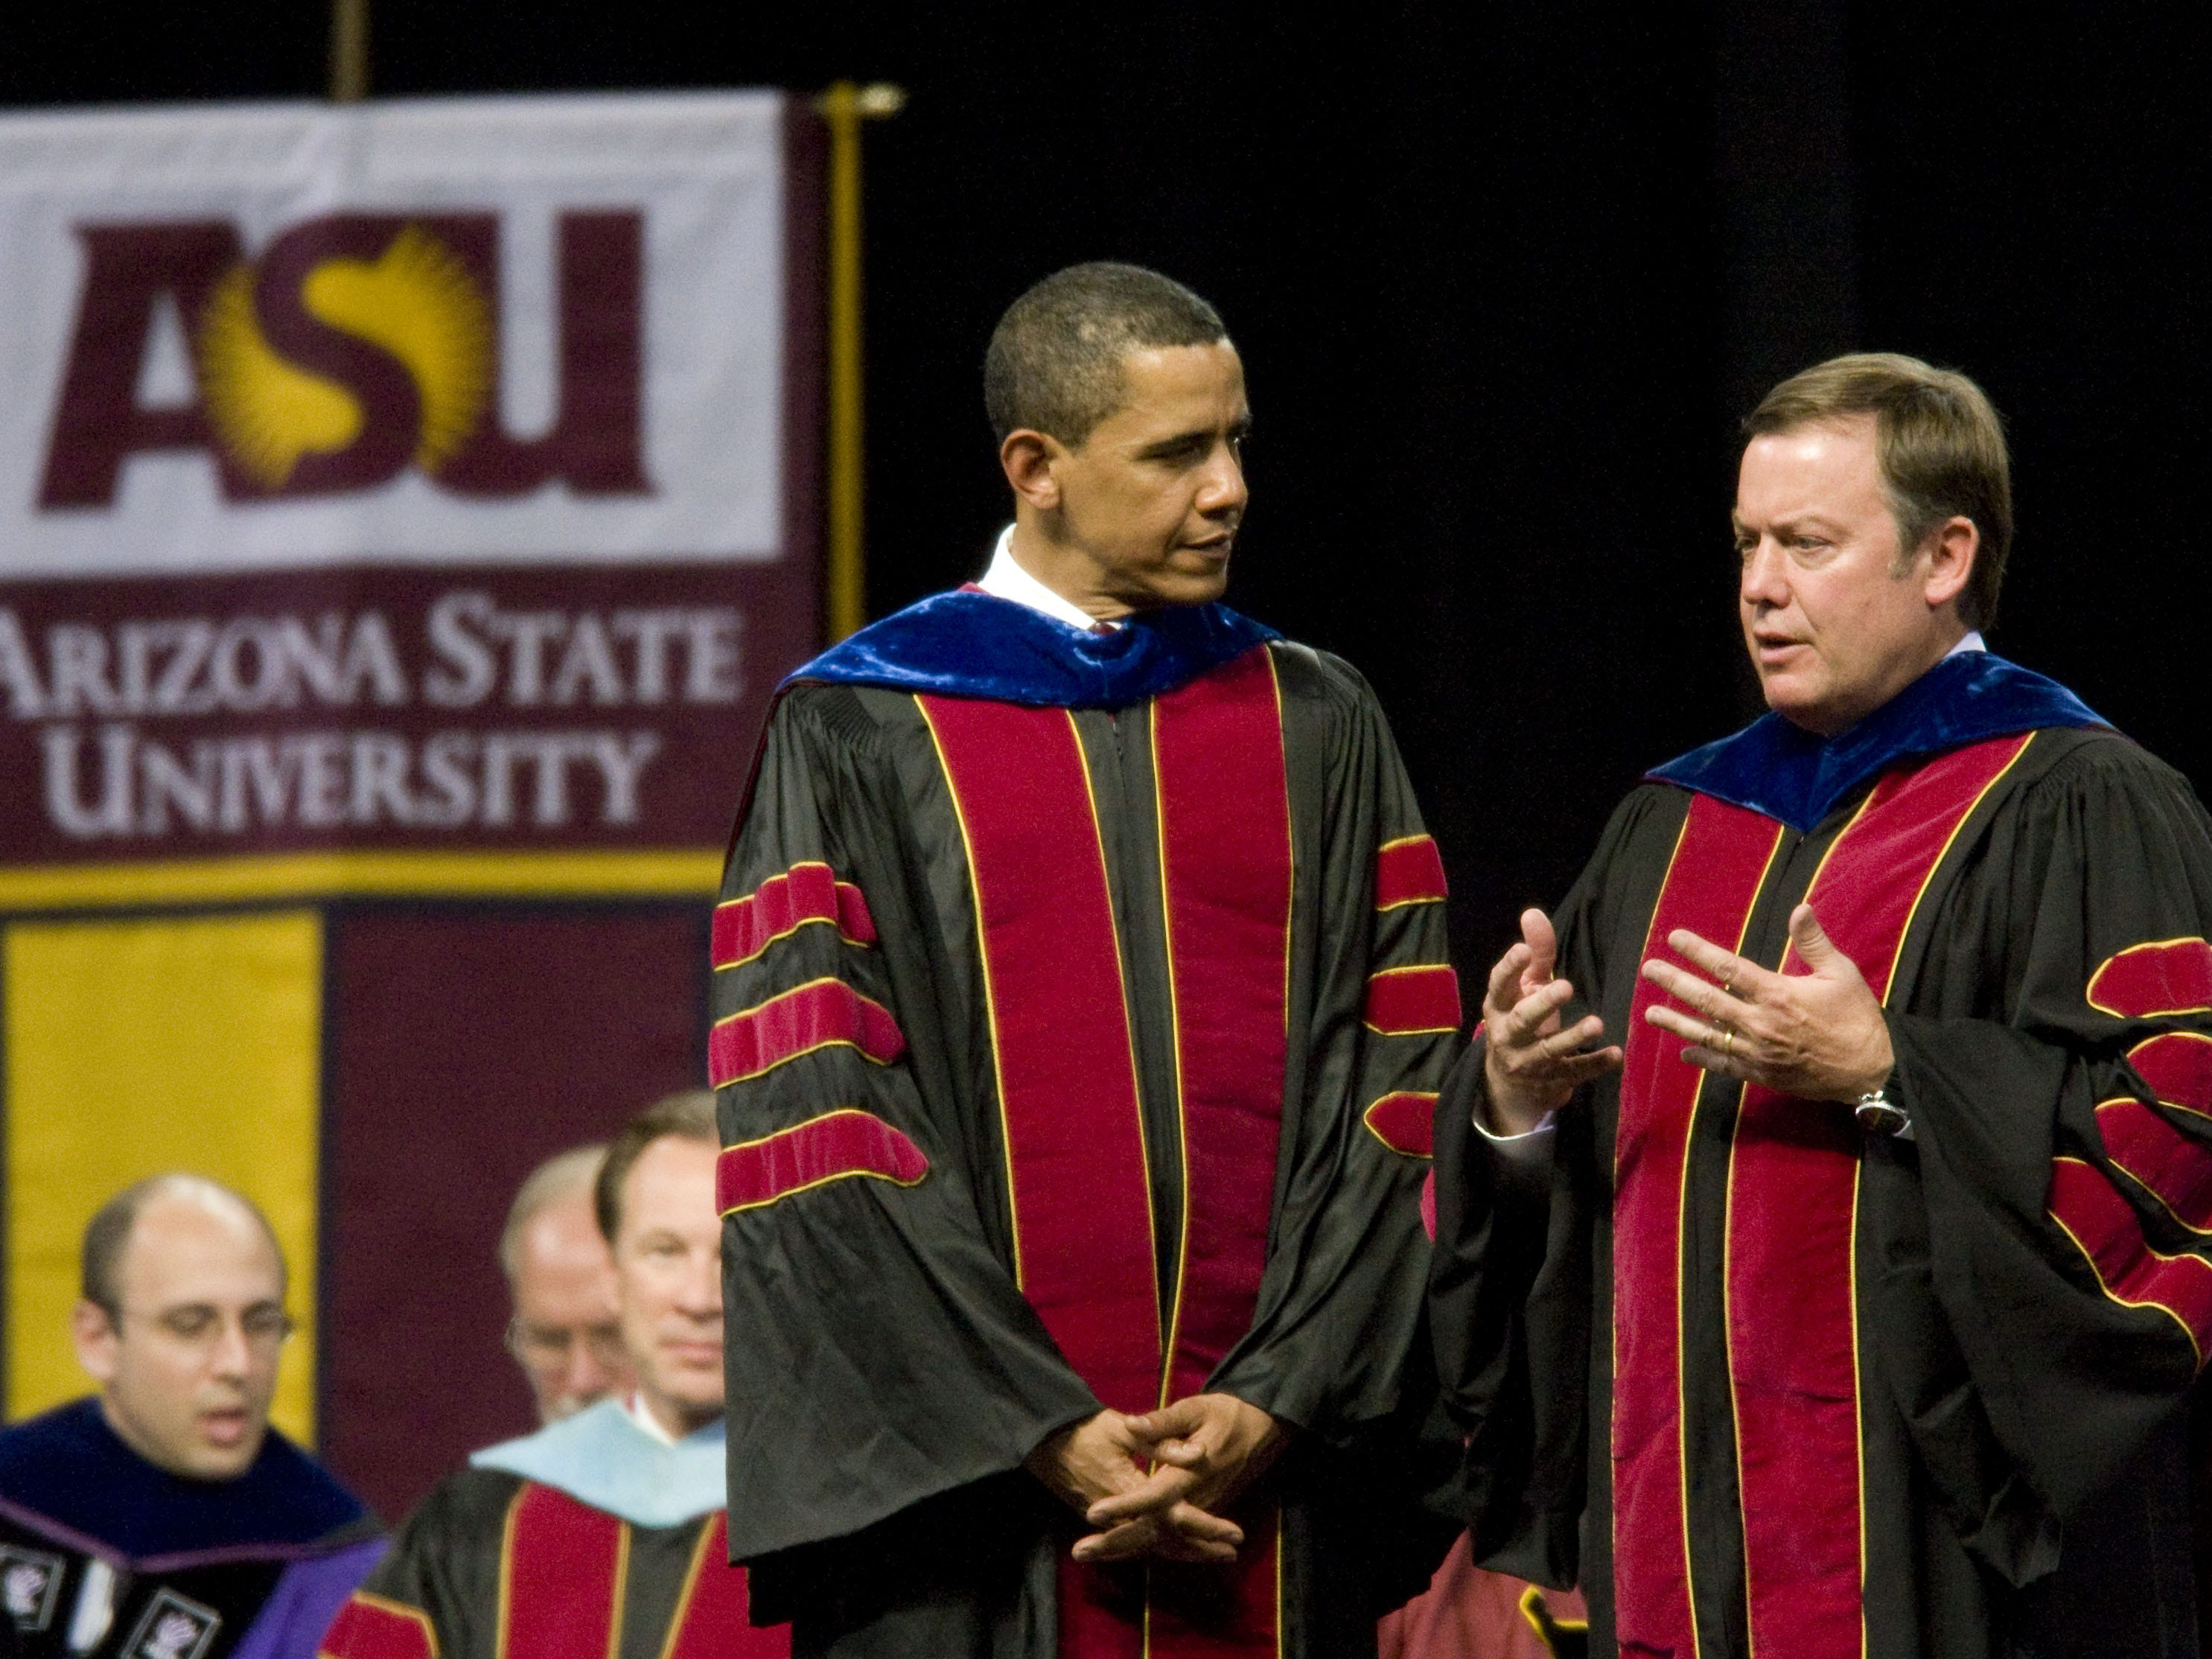 Former U.S. President Barack Obama speaks with ASU president Michael Crow during the Arizona State University commencement ceremony at Sun Devil Stadium in 2009.